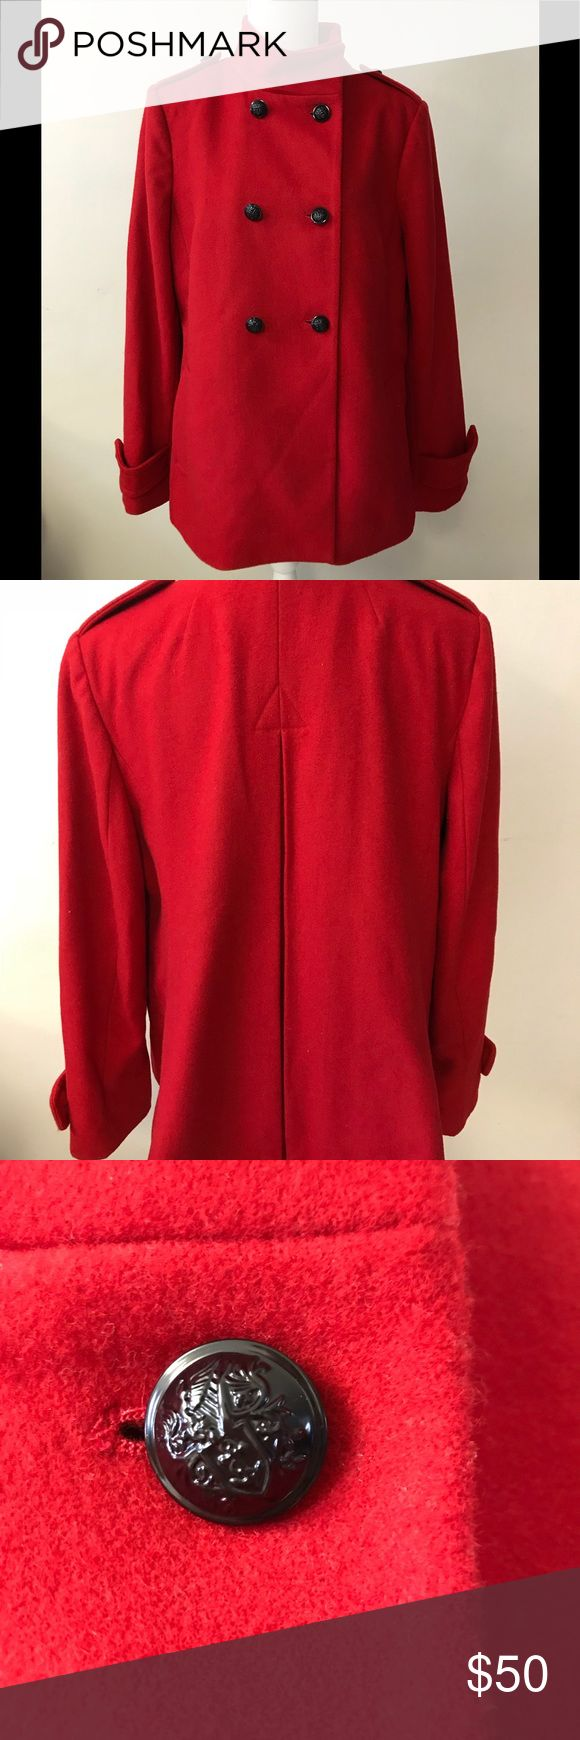 """Brand New Red Banana Republic pea coat Beautiful """"saucy red"""" Pea Coat.Great details on the buttons. Extra button attached inside jacket. Never worn. Just too big for me now. Banana Republic Jackets & Coats Pea Coats"""